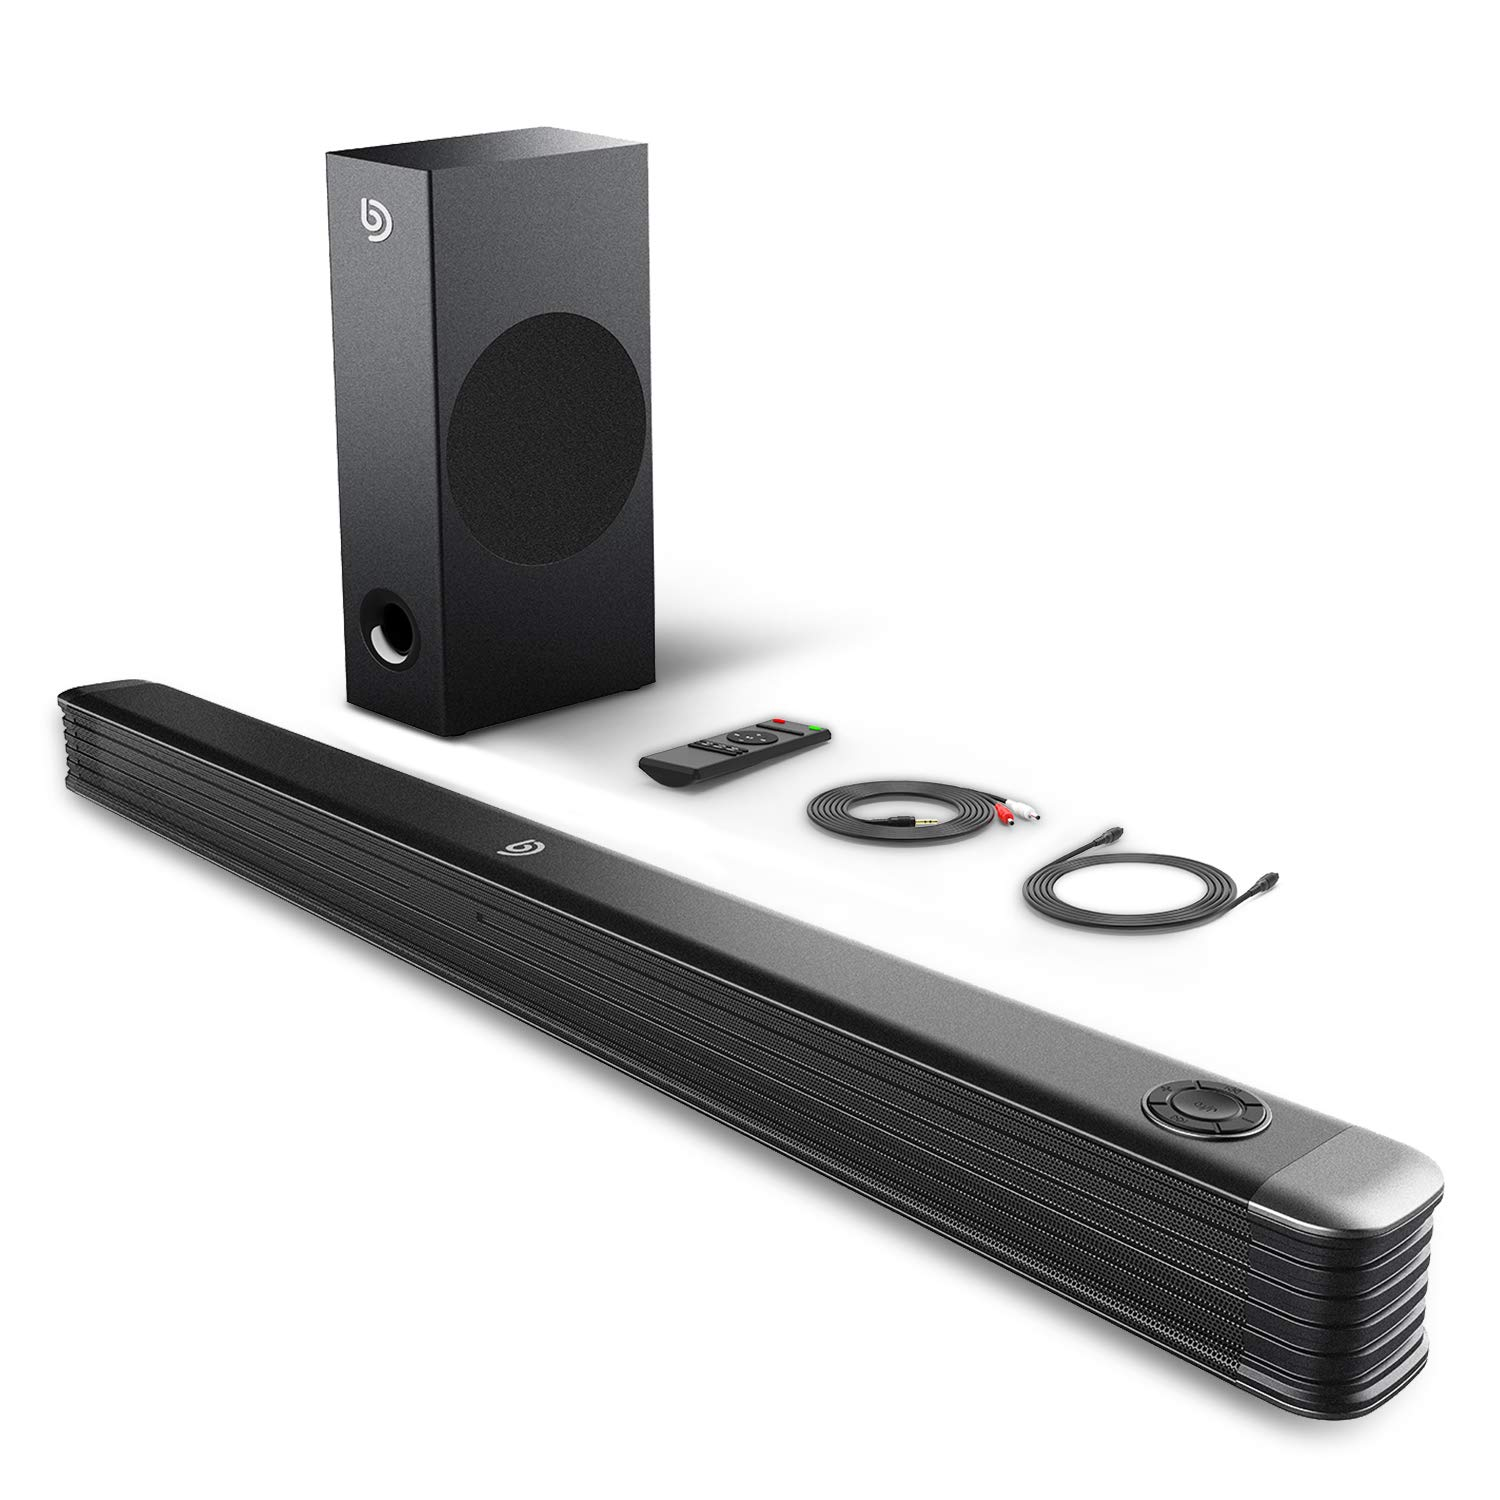 BOMAKER Sound Bar, 150W Soundbar with Wireless Subwoofer, 2.1 Channel Sound Bar for TV, 34 Inch Wired & Wireless Bluetooth 5.0, Enhanced Bass Adjustment, Optical/Coaxial/Aux/USB, Wall Mountable by BOMAKER